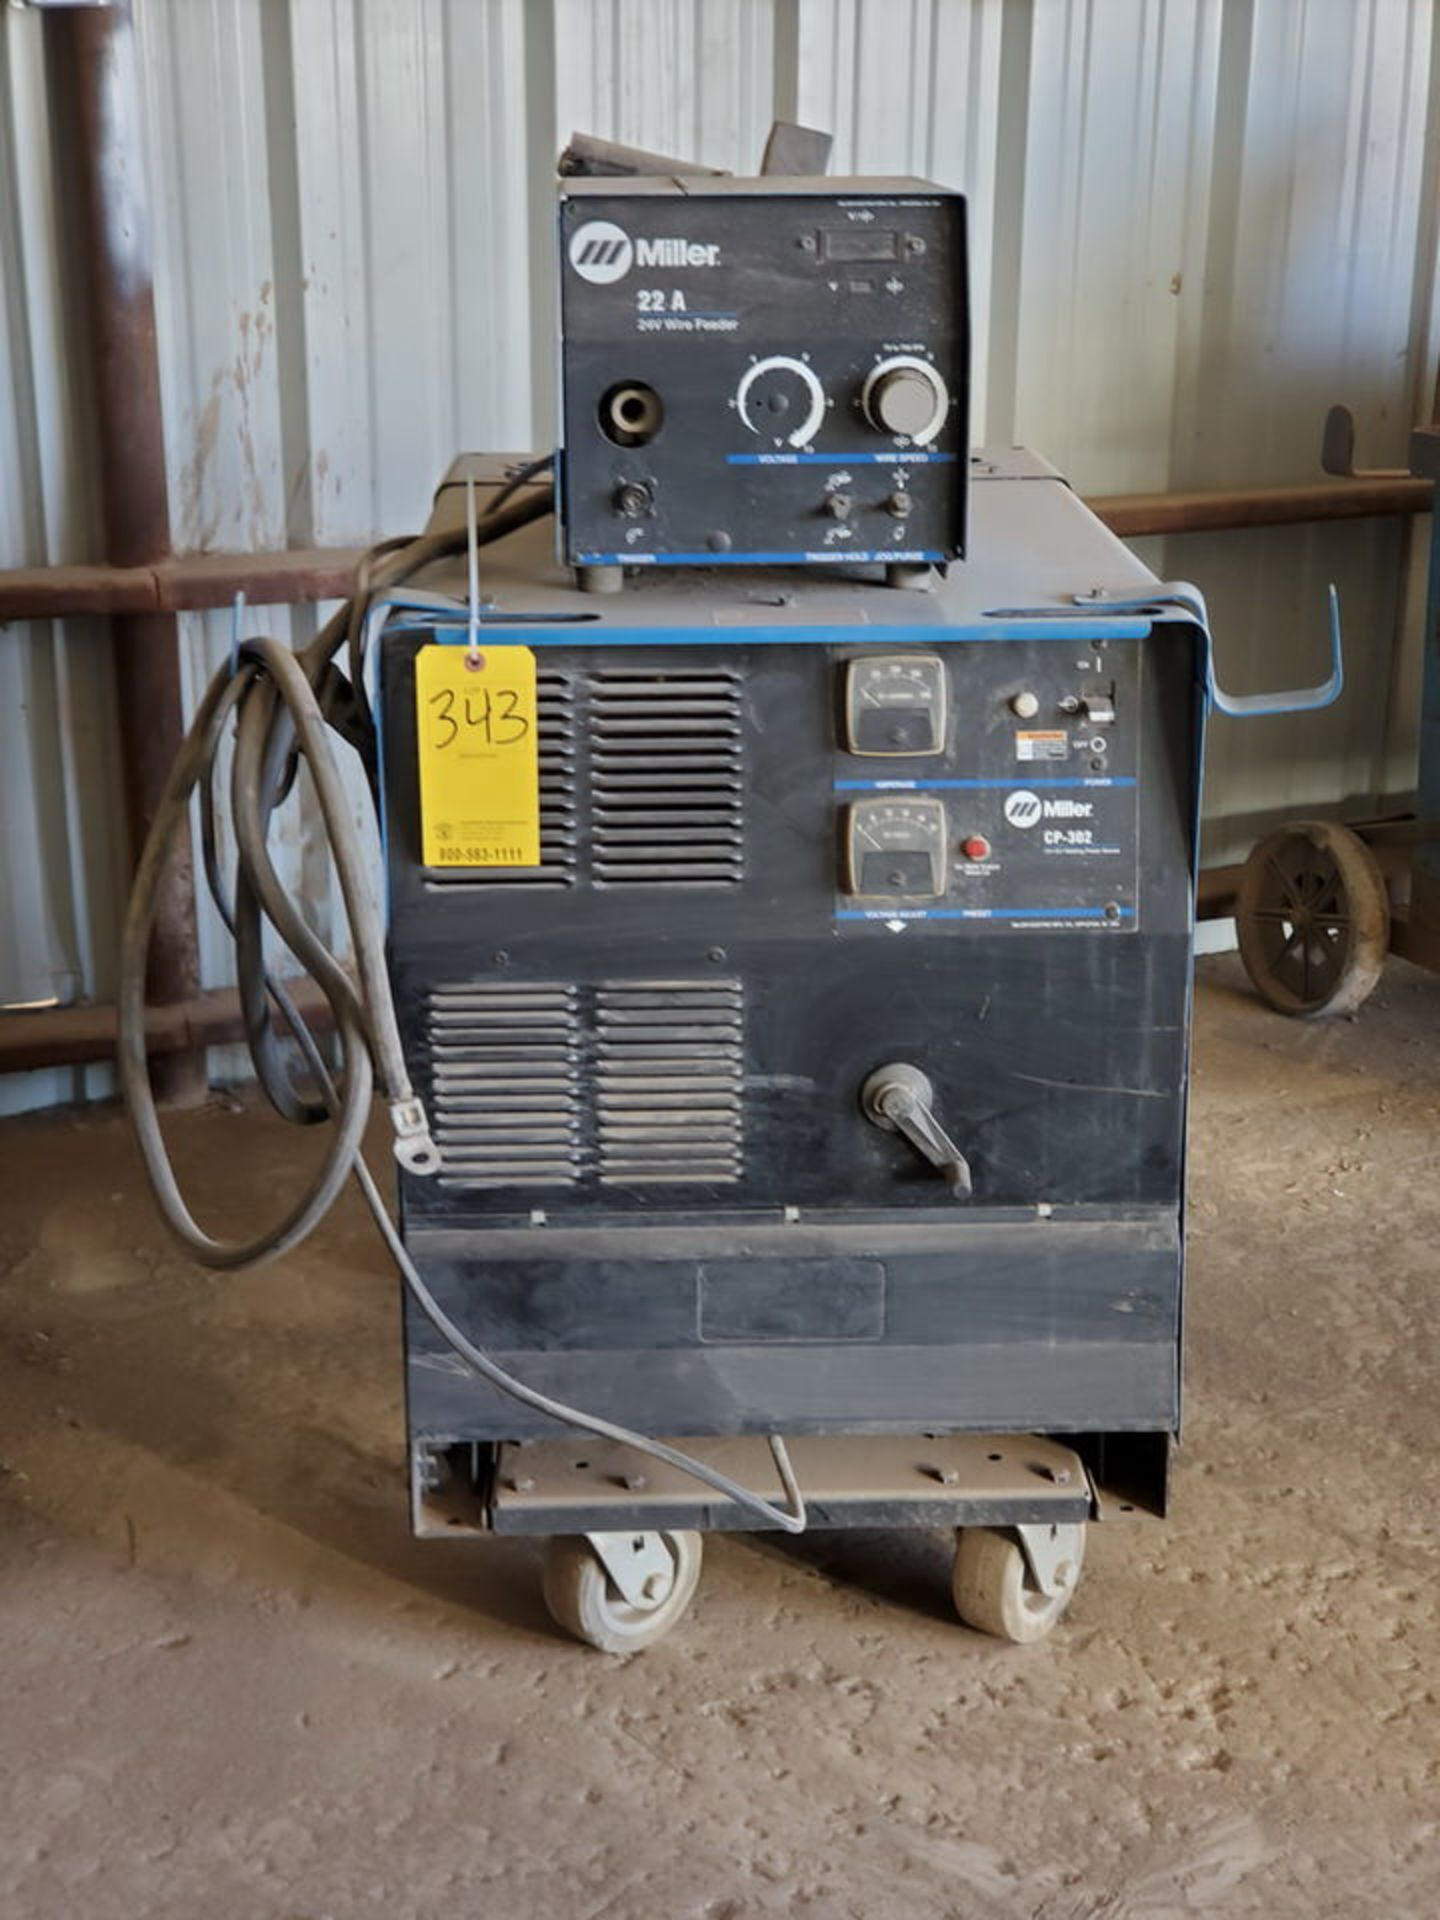 Miller CP-302 Multiprocessing Welder W/ S-22A CC/CV Wire Feeder - Image 2 of 5